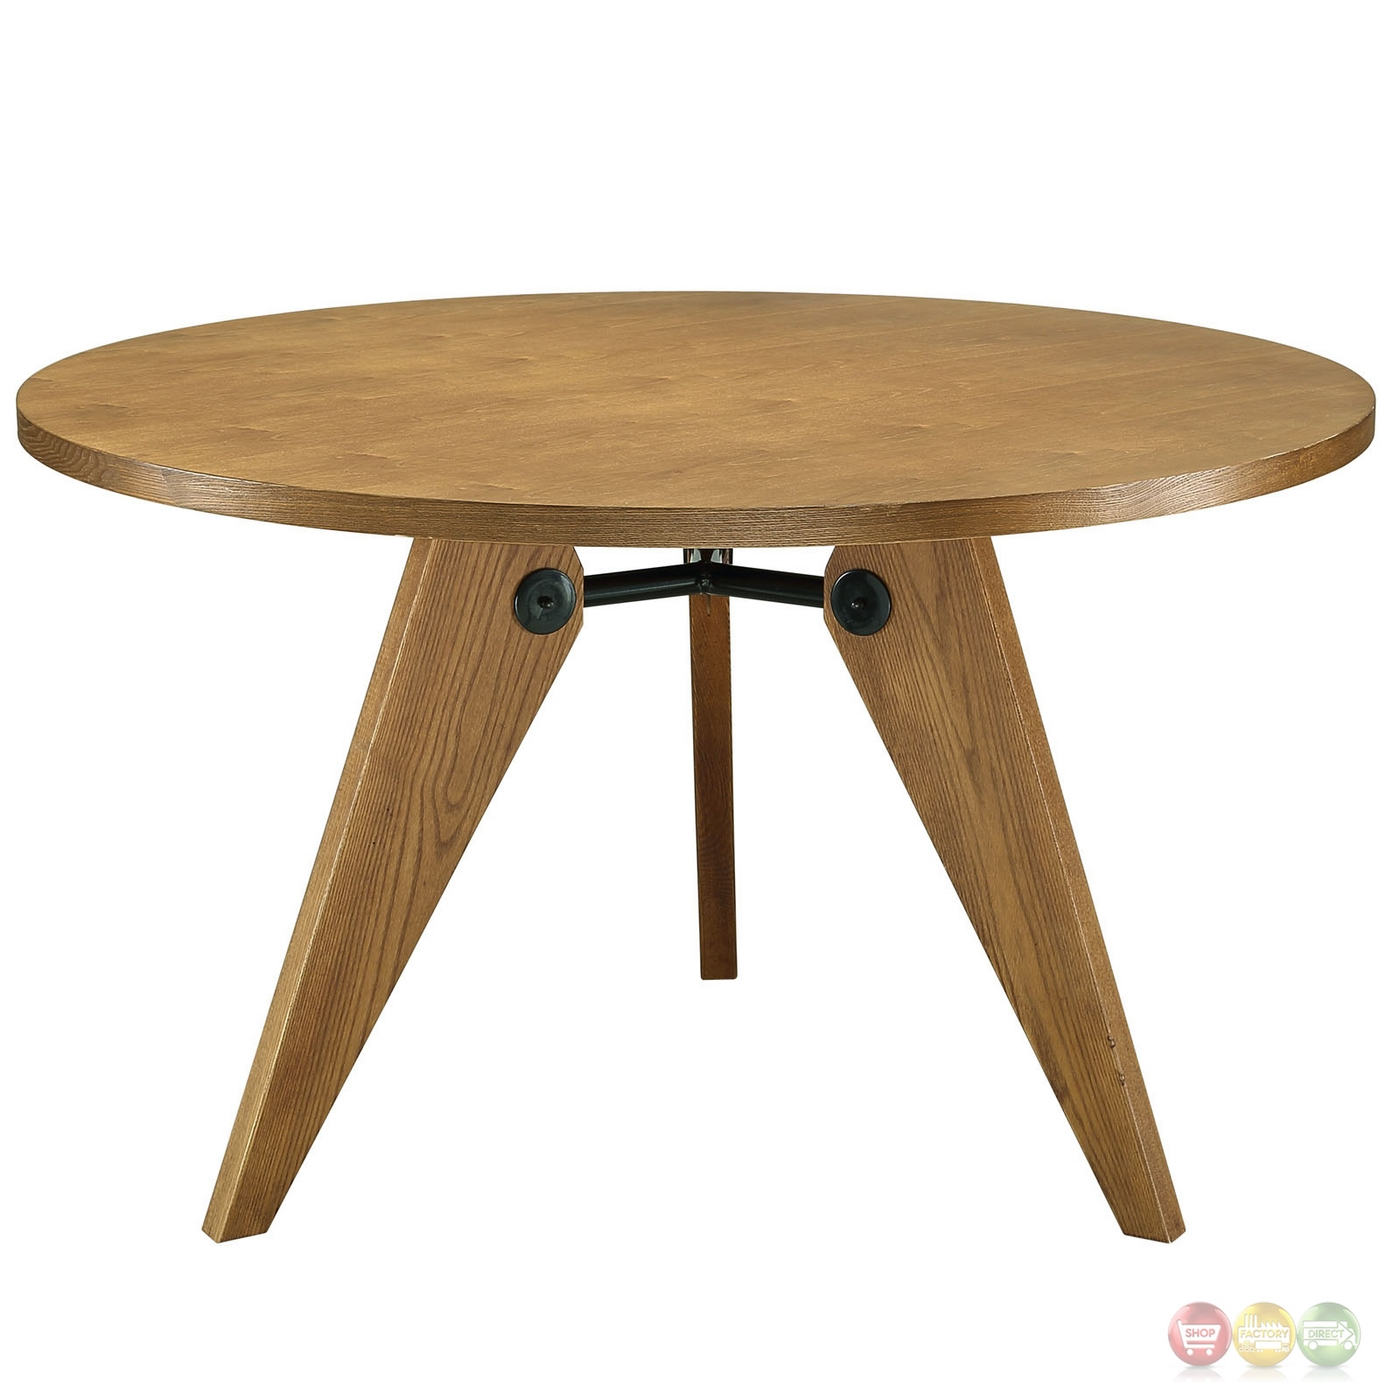 laurel 47 round dining table in natural wood finish walnut. Black Bedroom Furniture Sets. Home Design Ideas